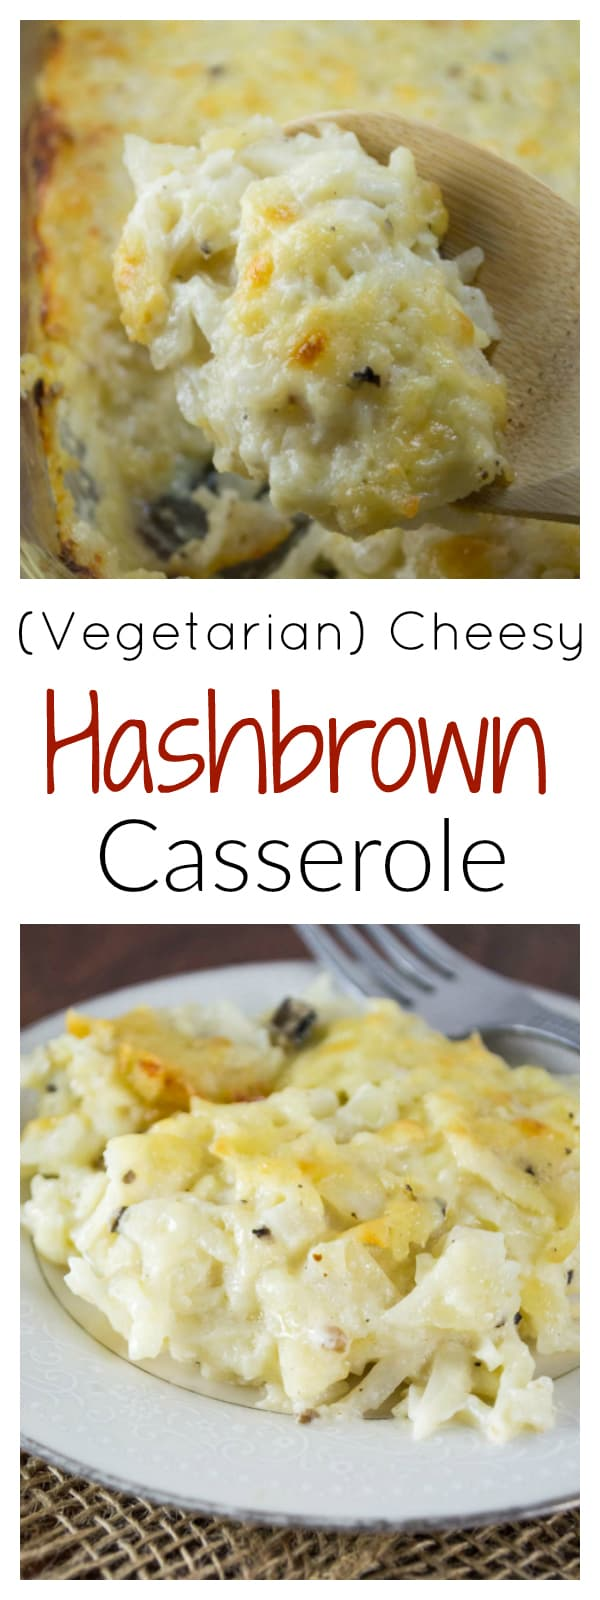 Vegetarian Cheesy Hashbrown Casserole (Cracker Barrel copycat recipe)